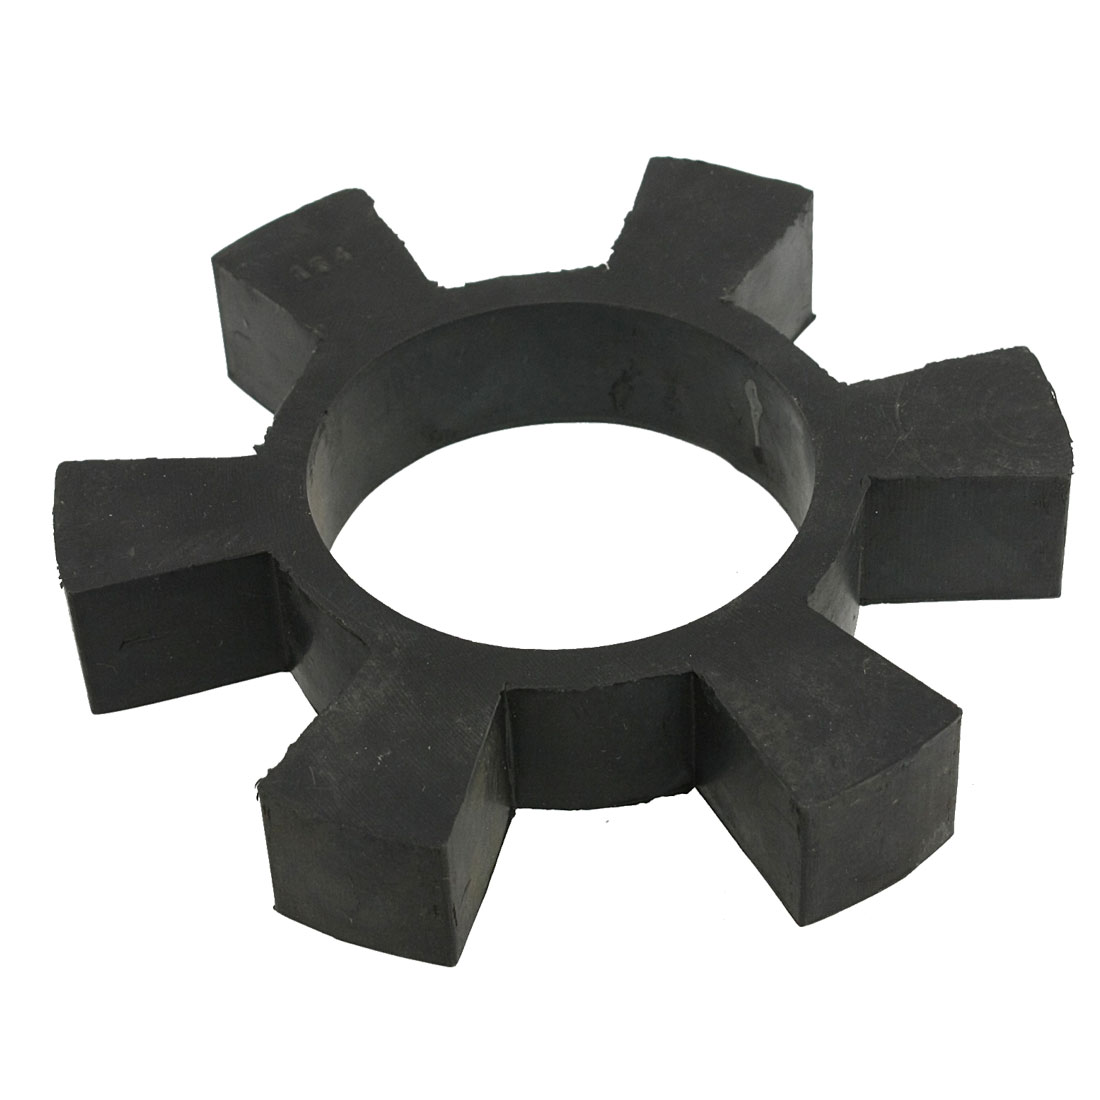 Unique Bargains 154mm 6 1/16  Rubber Buffer Damper Coupler Coupling Insert Spider Cushion Pad